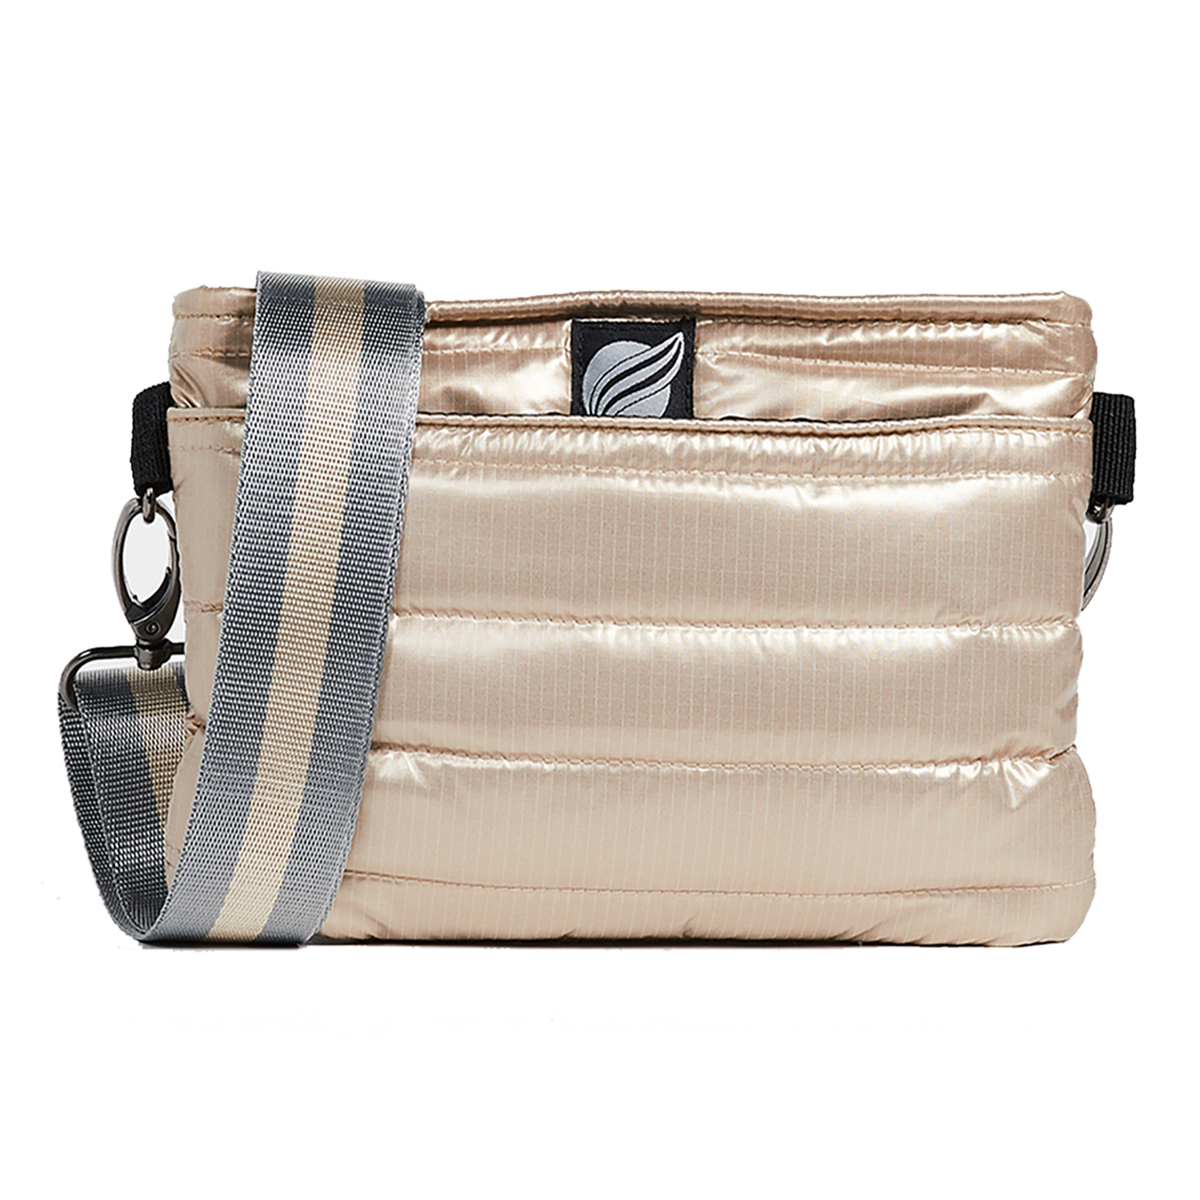 Think Royln Convertible Crossbody Bag